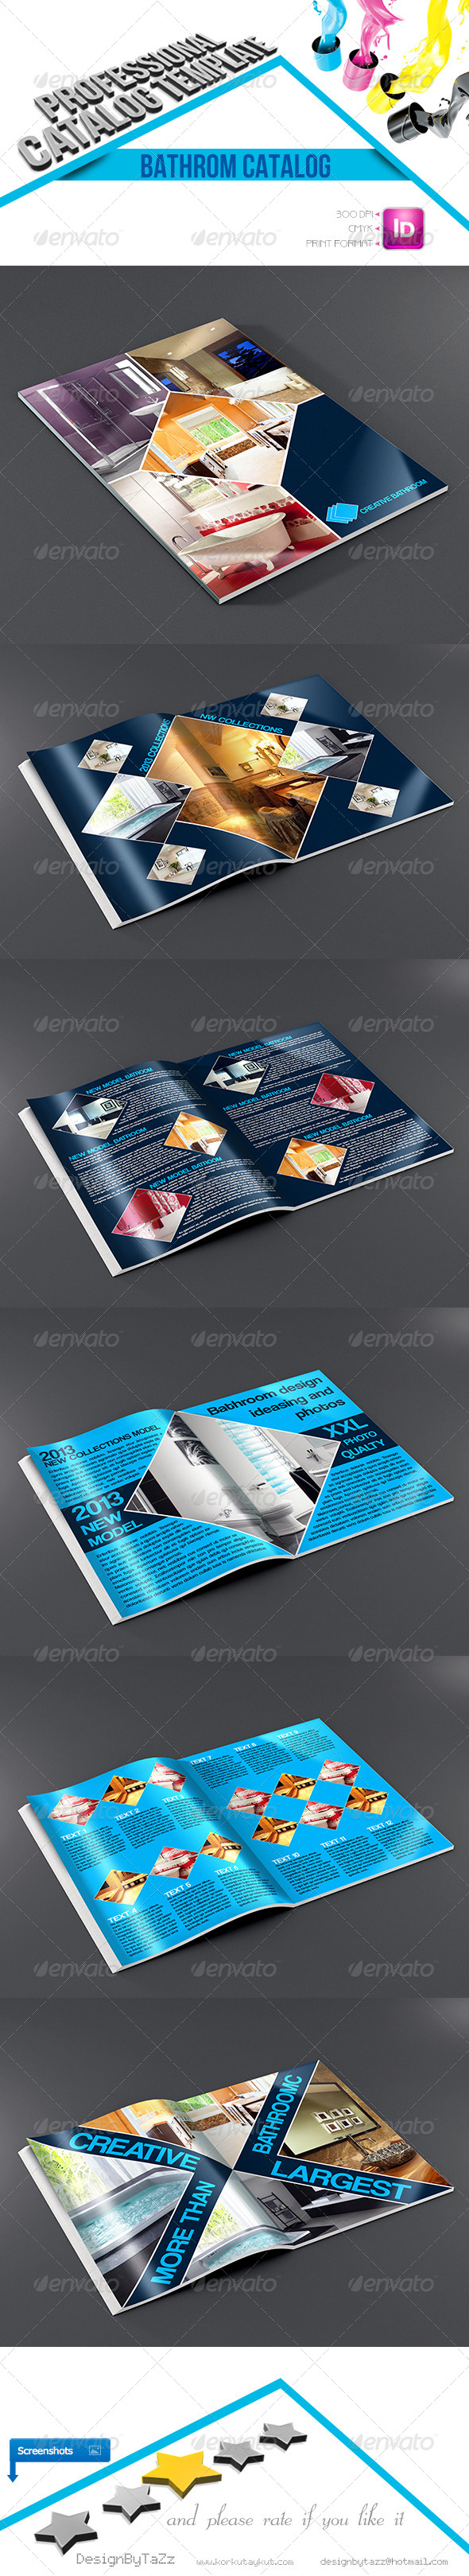 Creative Bathroom Catalog Template - Catalogs Brochures